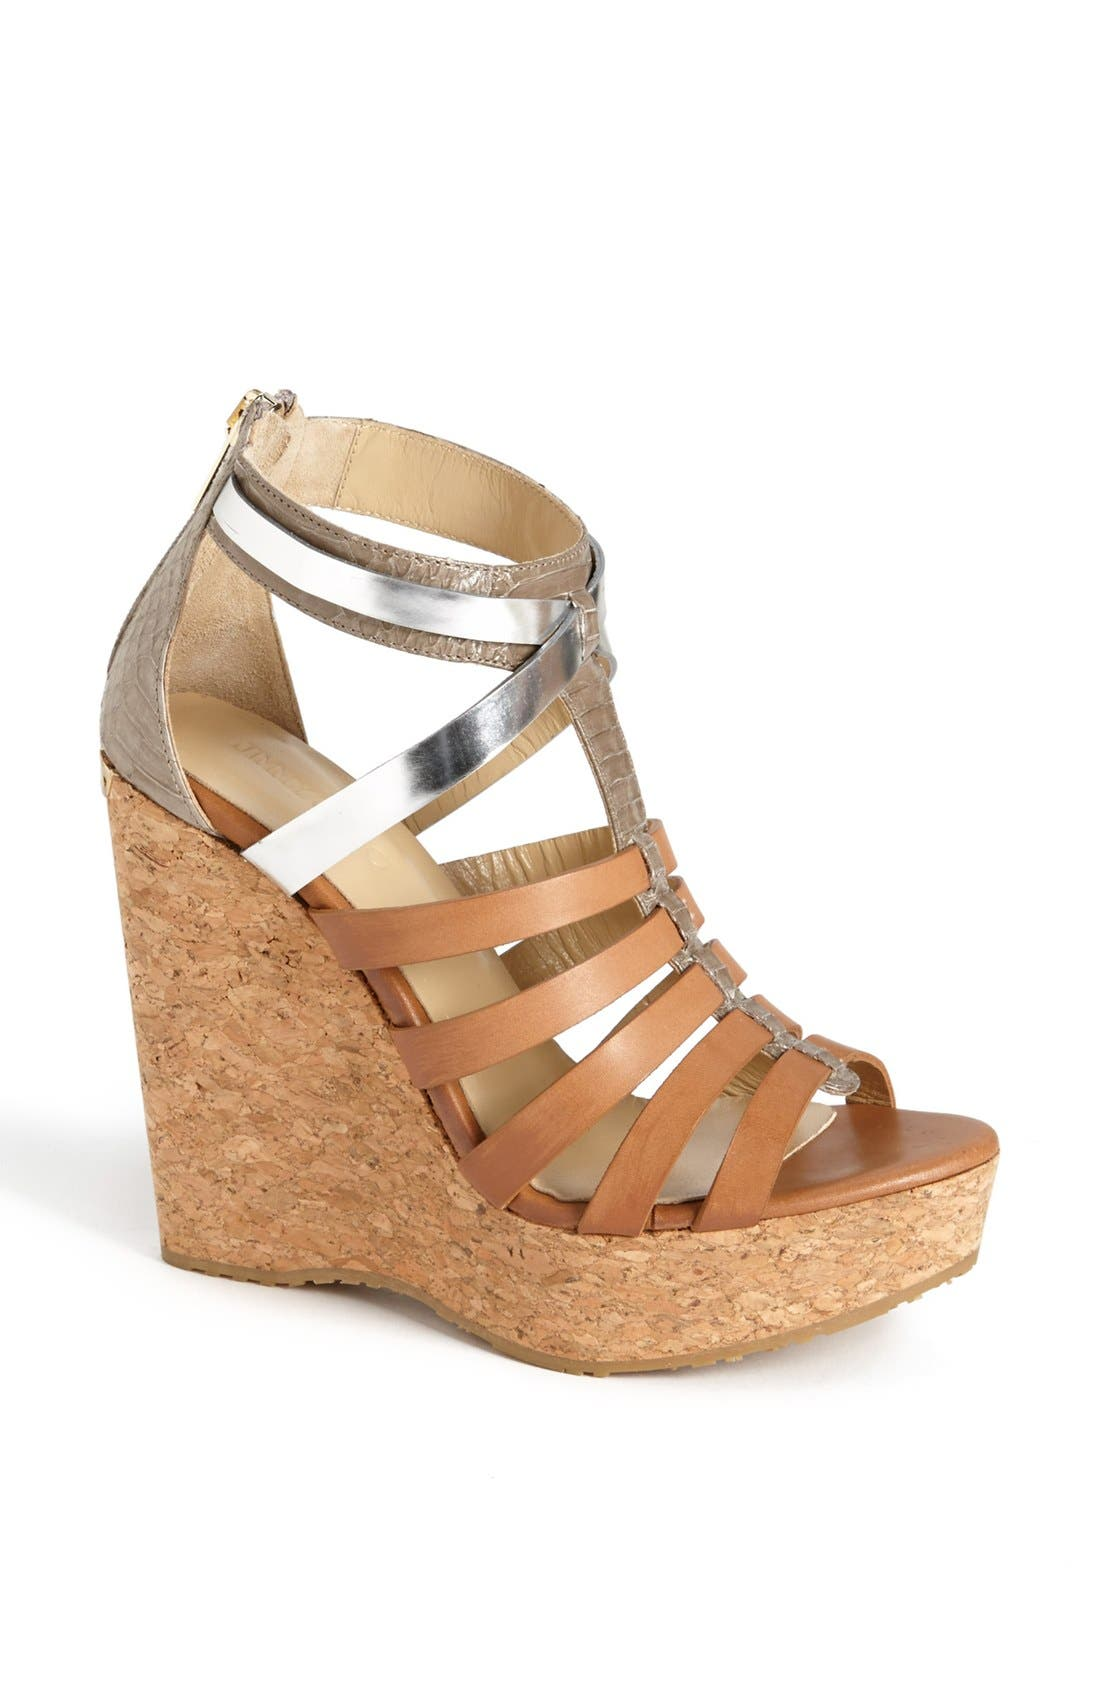 Main Image - Jimmy Choo 'Pierce' Wedge Sandal